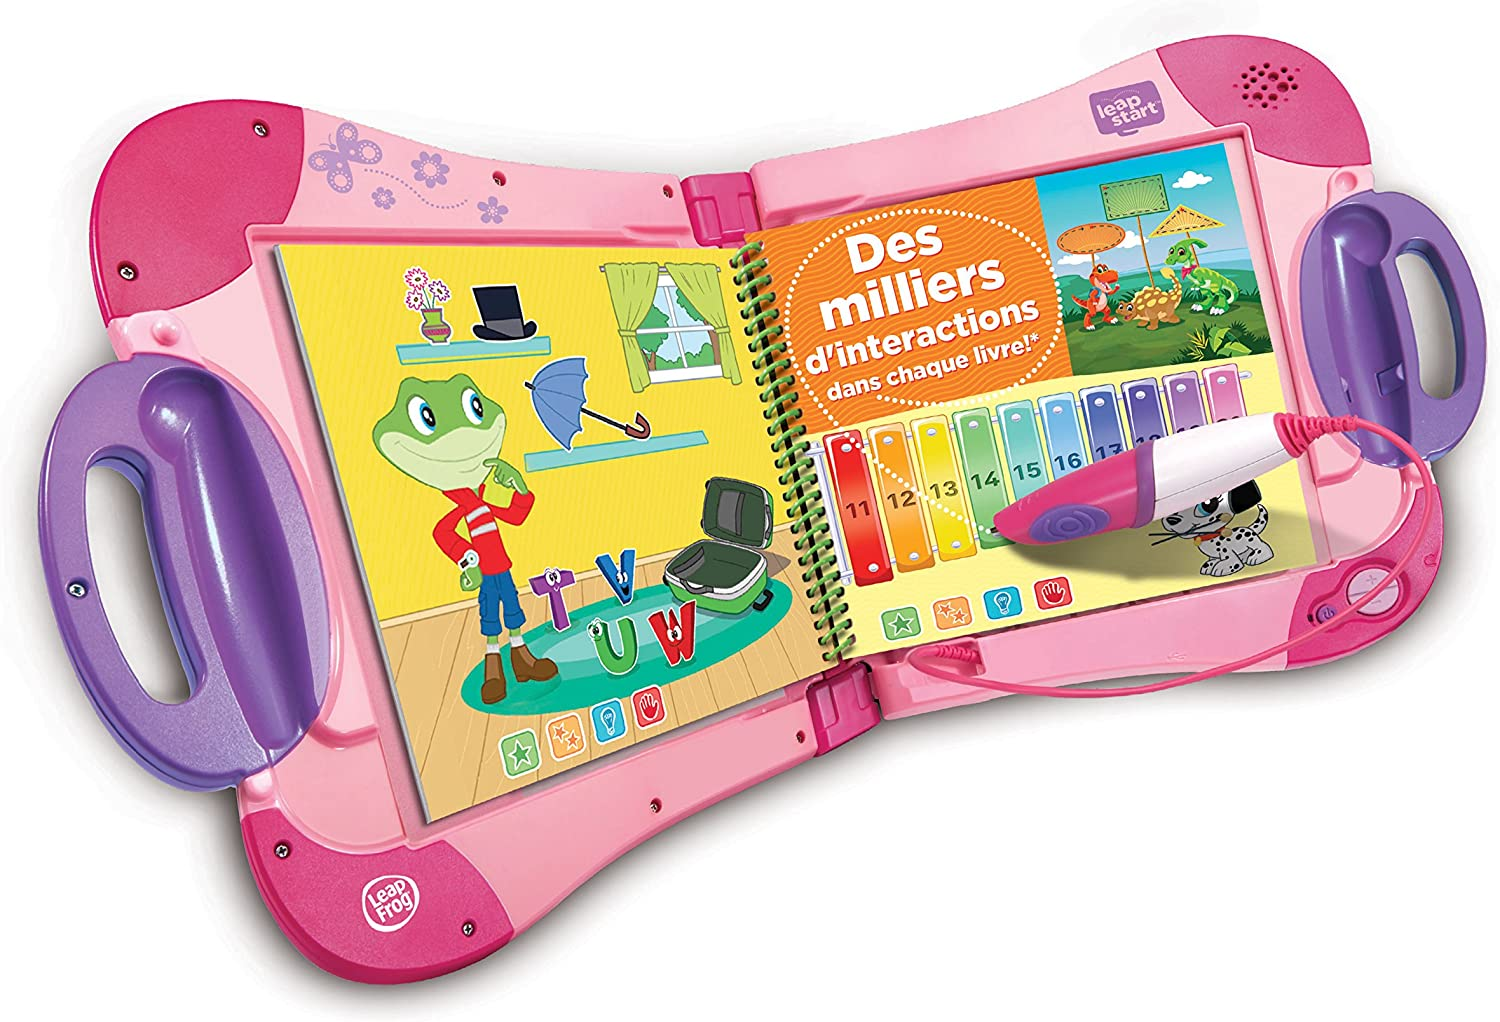 LeapFrog LeapStart Interactive Learning System (Pink) - French Version